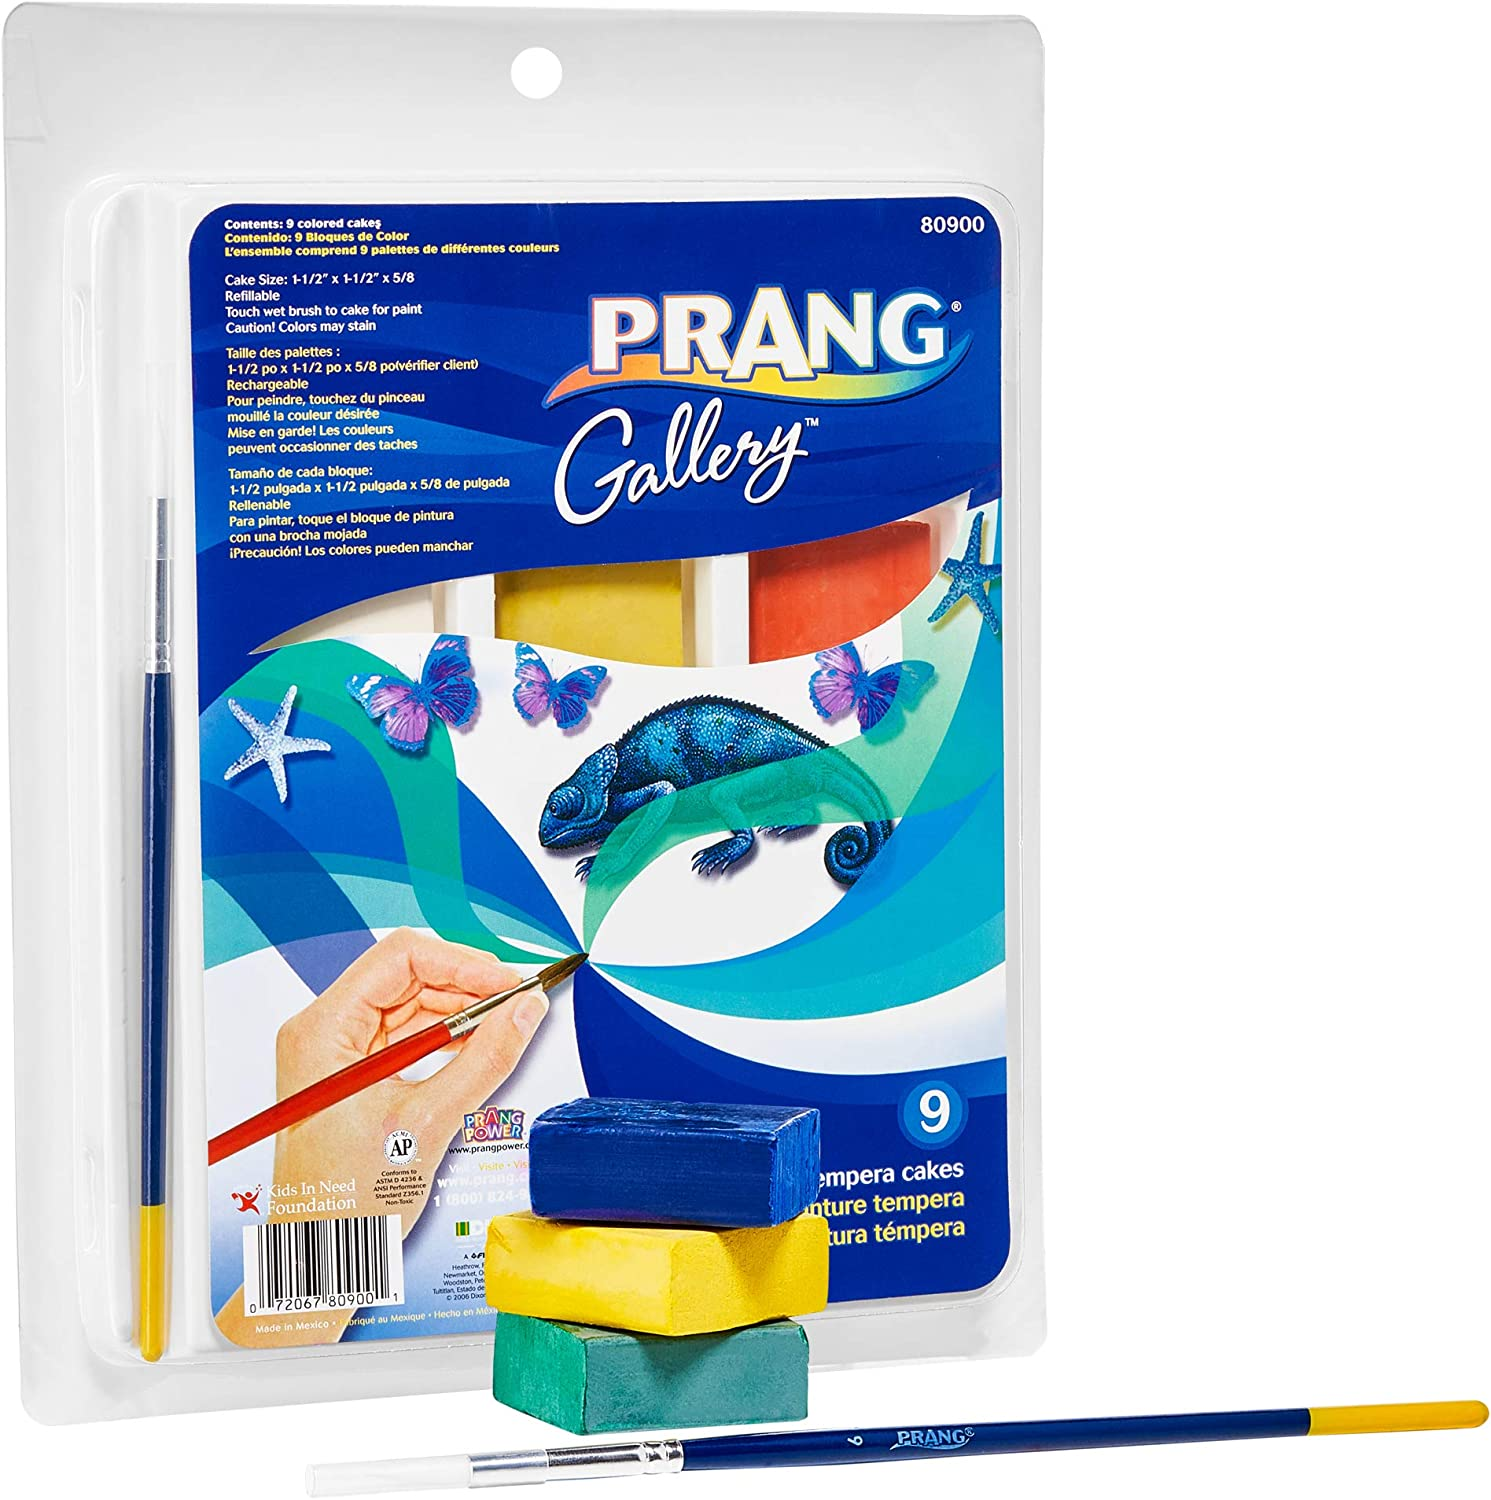 Prang Gallery Classic Tempera Paint Cakes, 9 Color Set with Divided Pan and Brush (80900), 1-1/2 x 1-1/2 x 5/8 in,Multi: Office Products